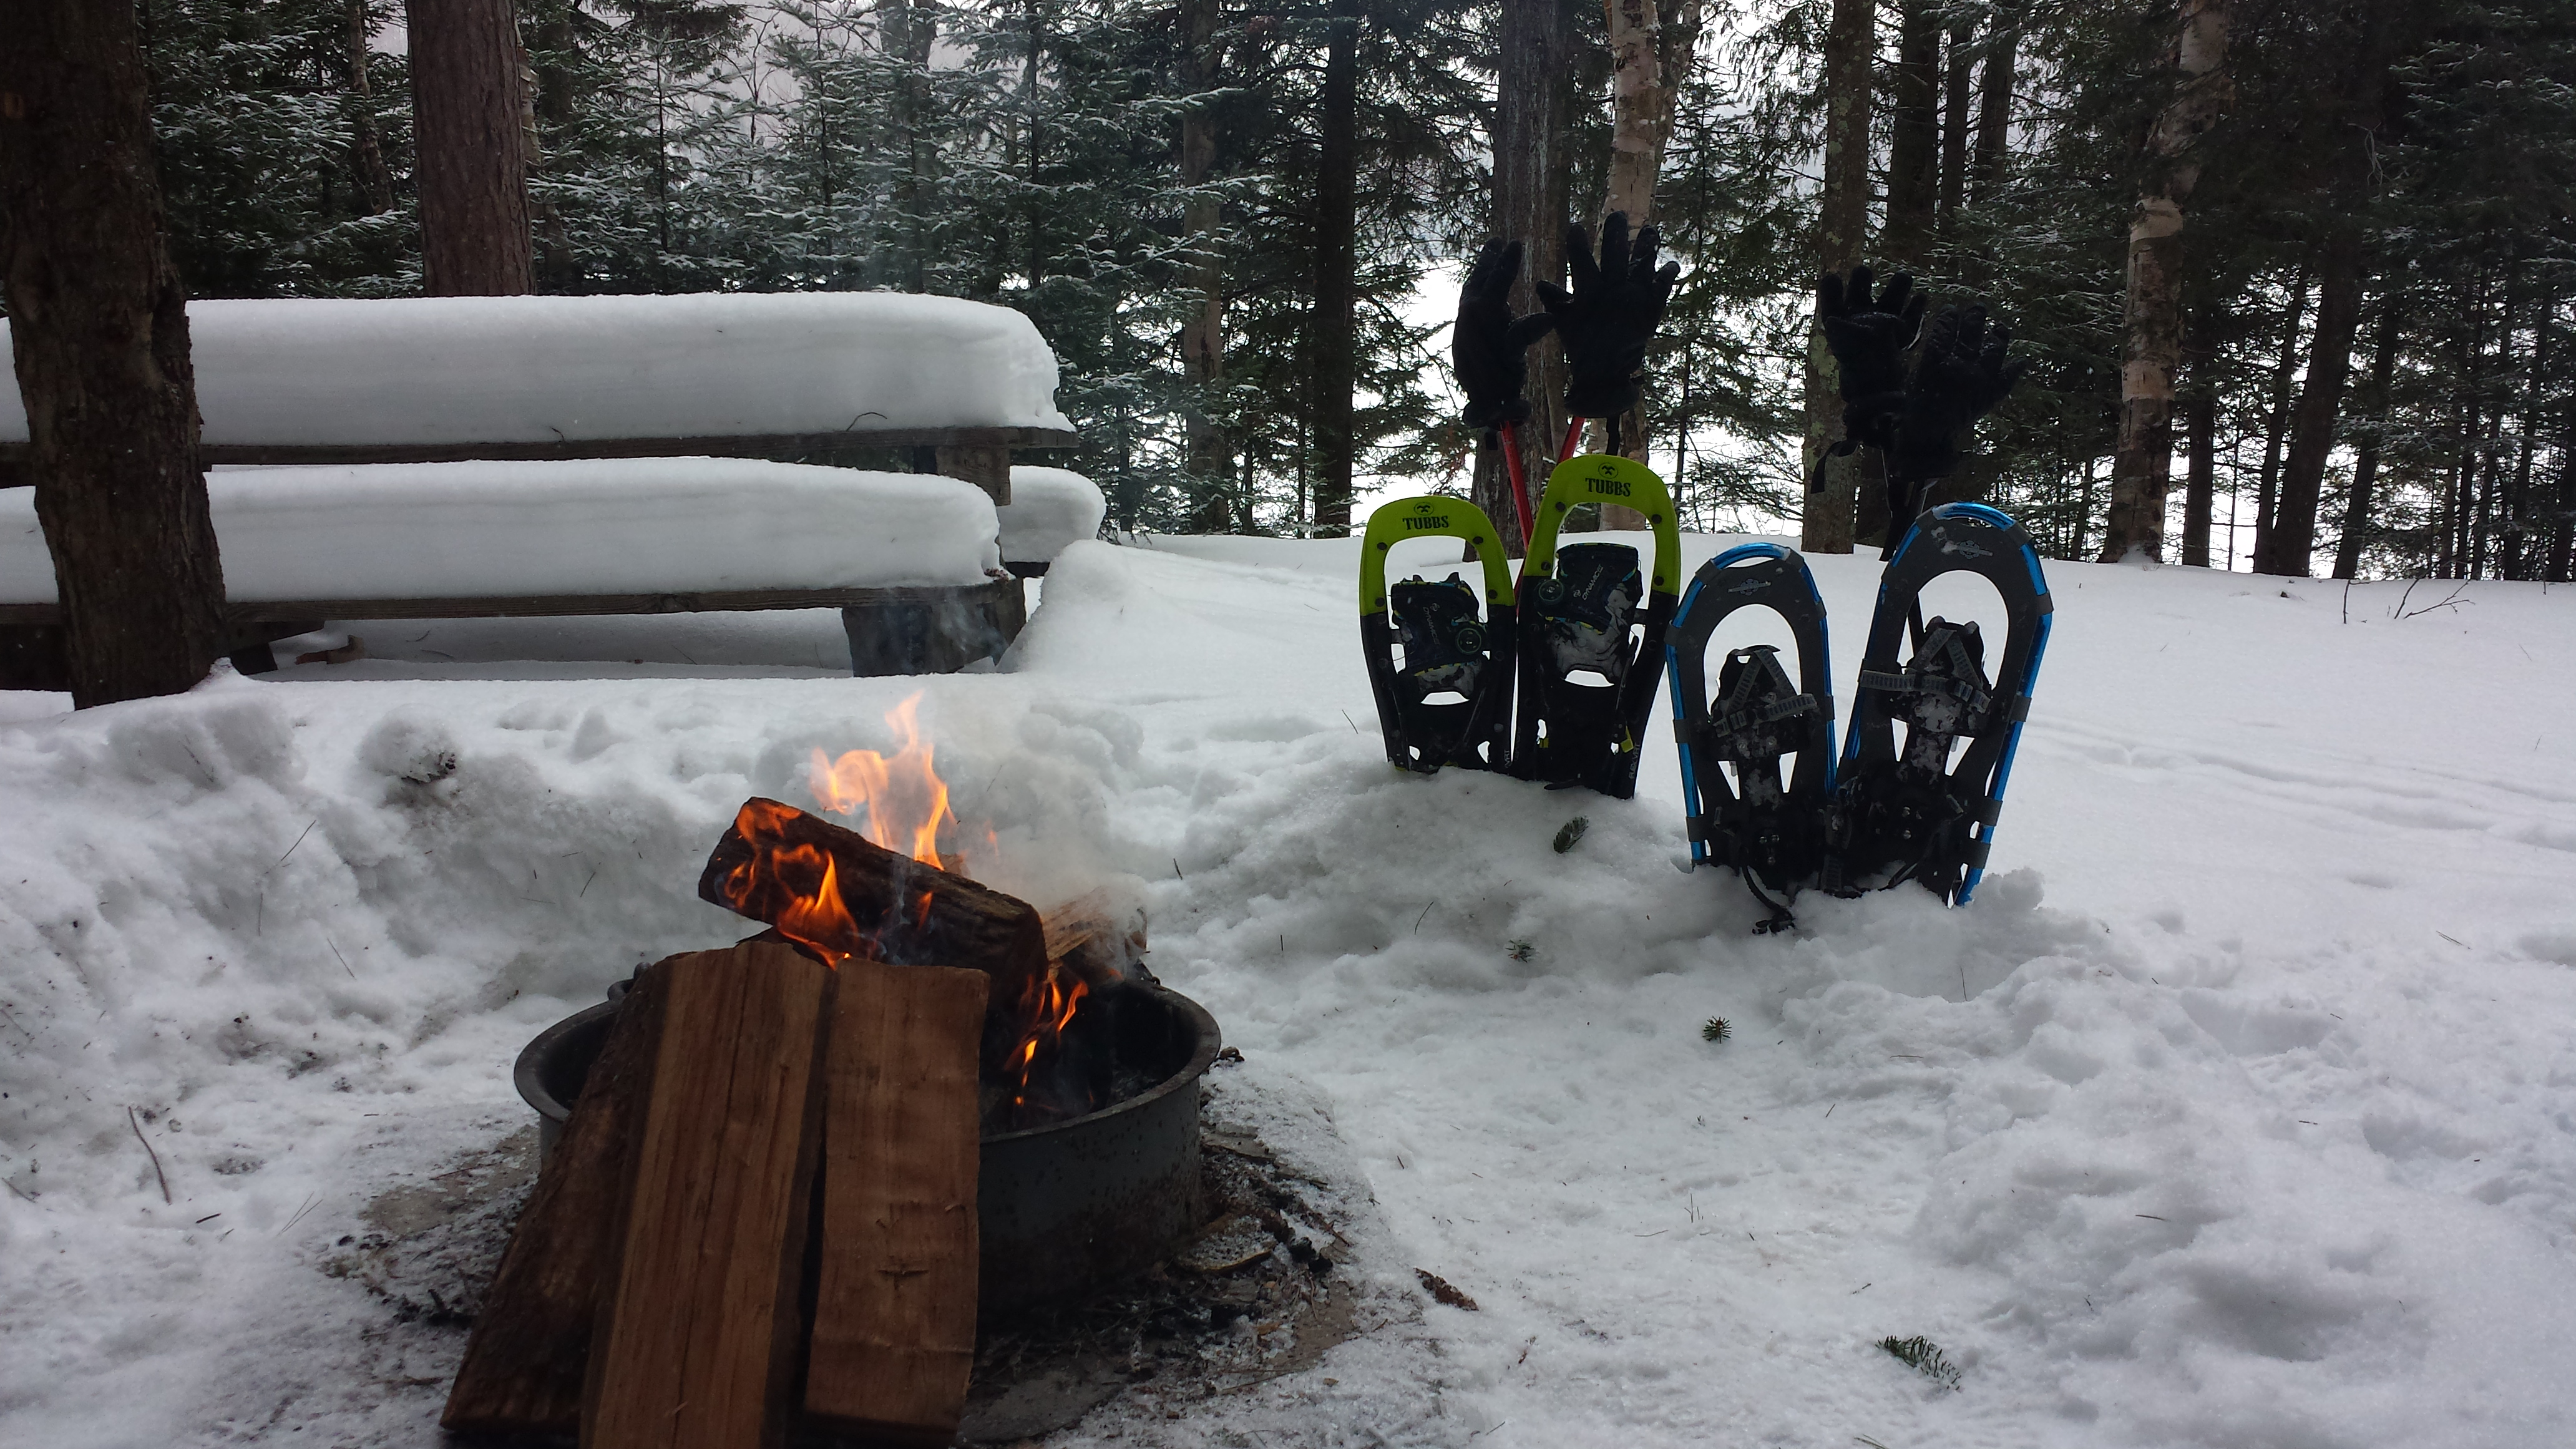 Ready for some Winter fun! Lean to camping in the Winter at ADK's Wilderness Campground at Heart Lake.